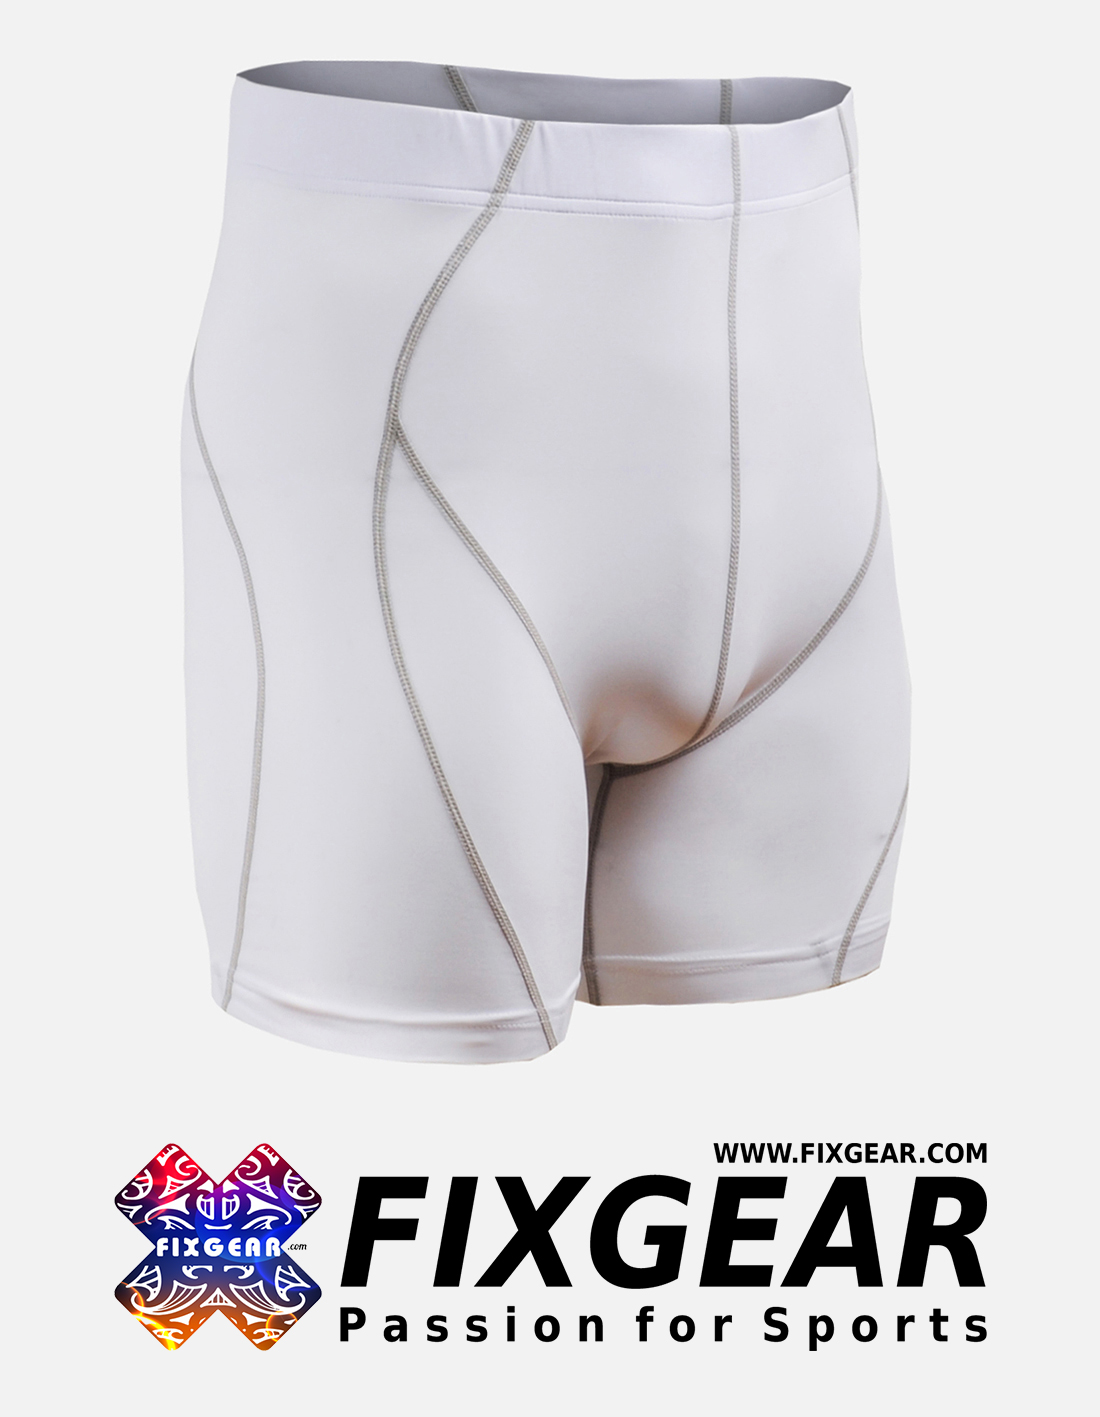 FIXGEAR P2S-WS Compression Shorts Under Training Base layer Drawers